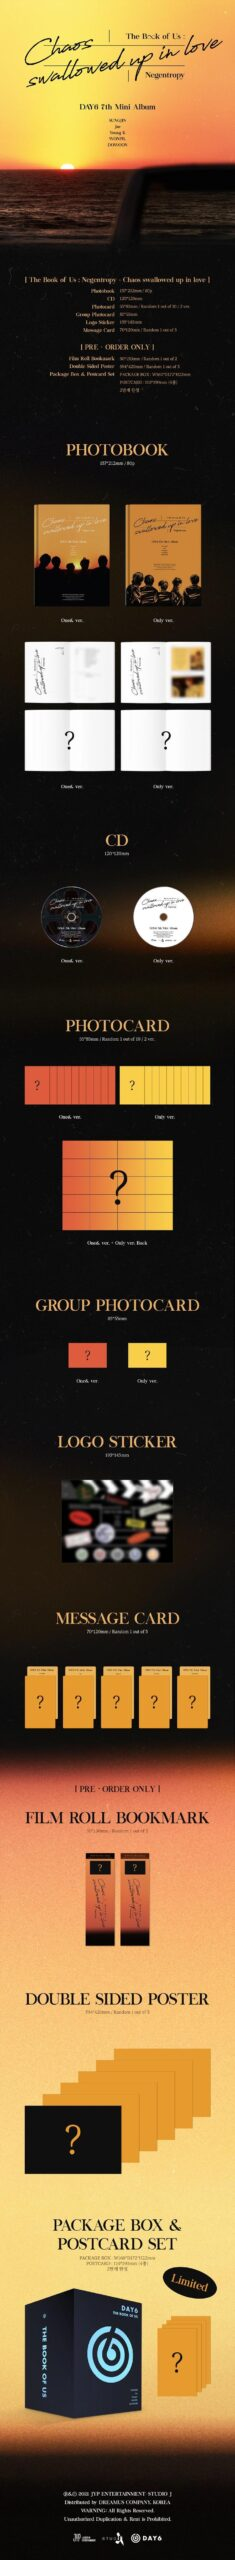 DAY6 7th Mini The Book of Us Negentropy Chaos swallowed up in love Random Ver. Poster